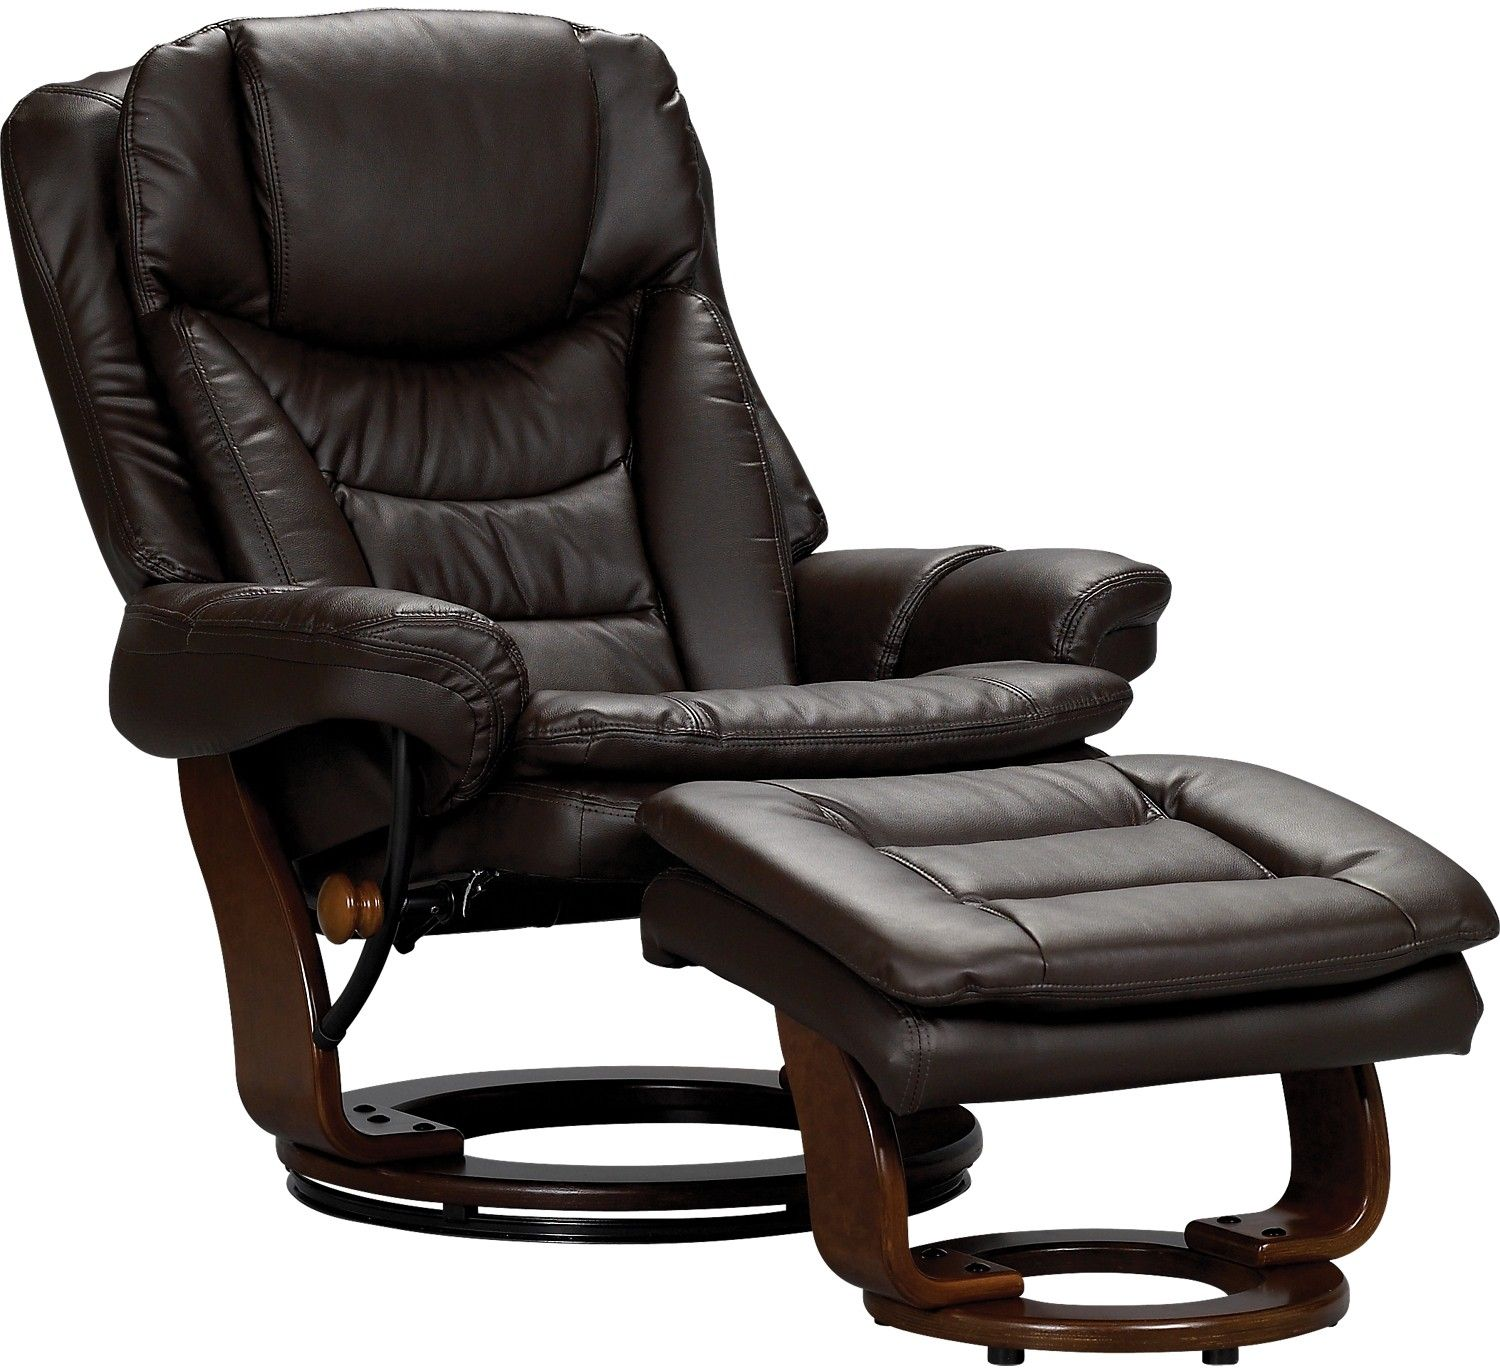 The Flynn Brown Chair Is Luxurious In Both Comfort And Style! With Multiple  Reclining Positions